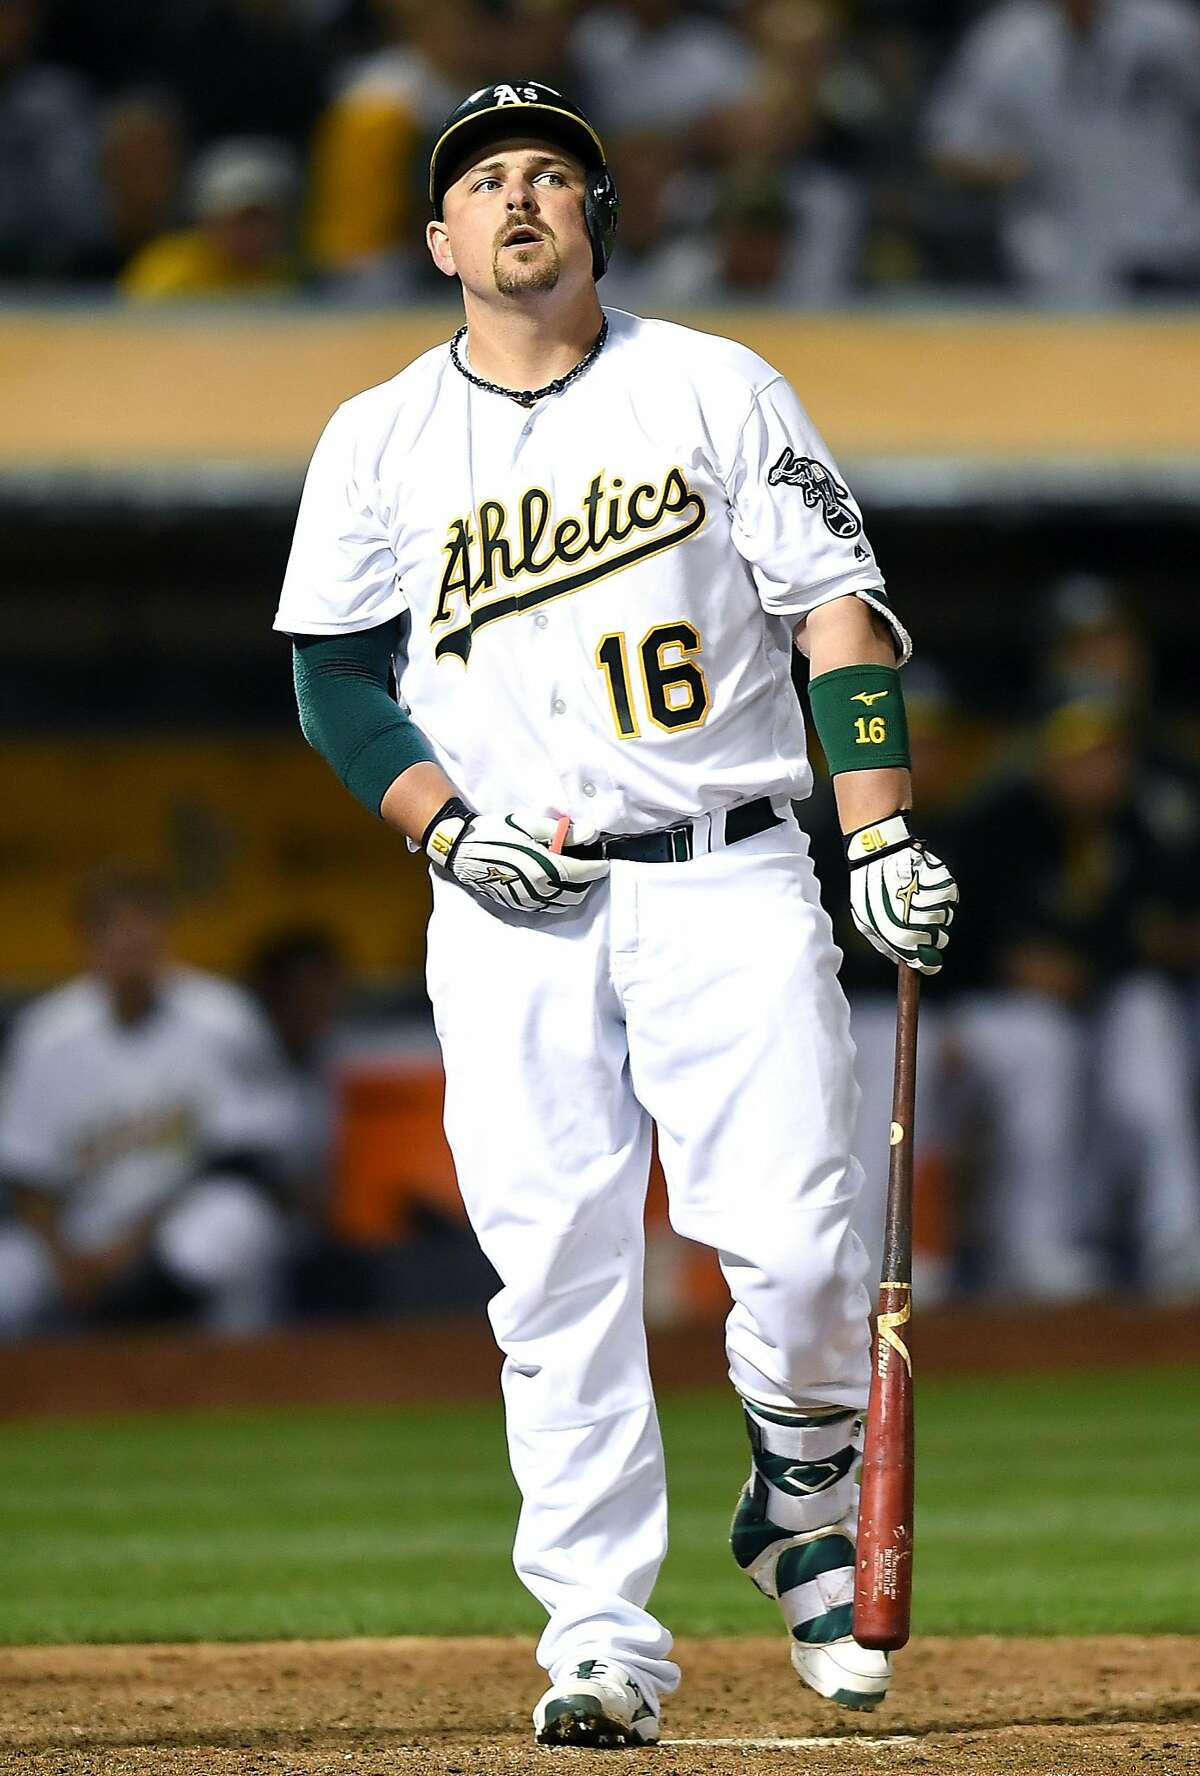 OAKLAND, CA - MAY 27: Billy Butler #16 of the Oakland Athletics reacts after he struck out swinging against the Detroit Tigers in the bottom of the eighth inning at O.co Coliseum on May 27, 2016 in Oakland, California. (Photo by Thearon W. Henderson/Getty Images)